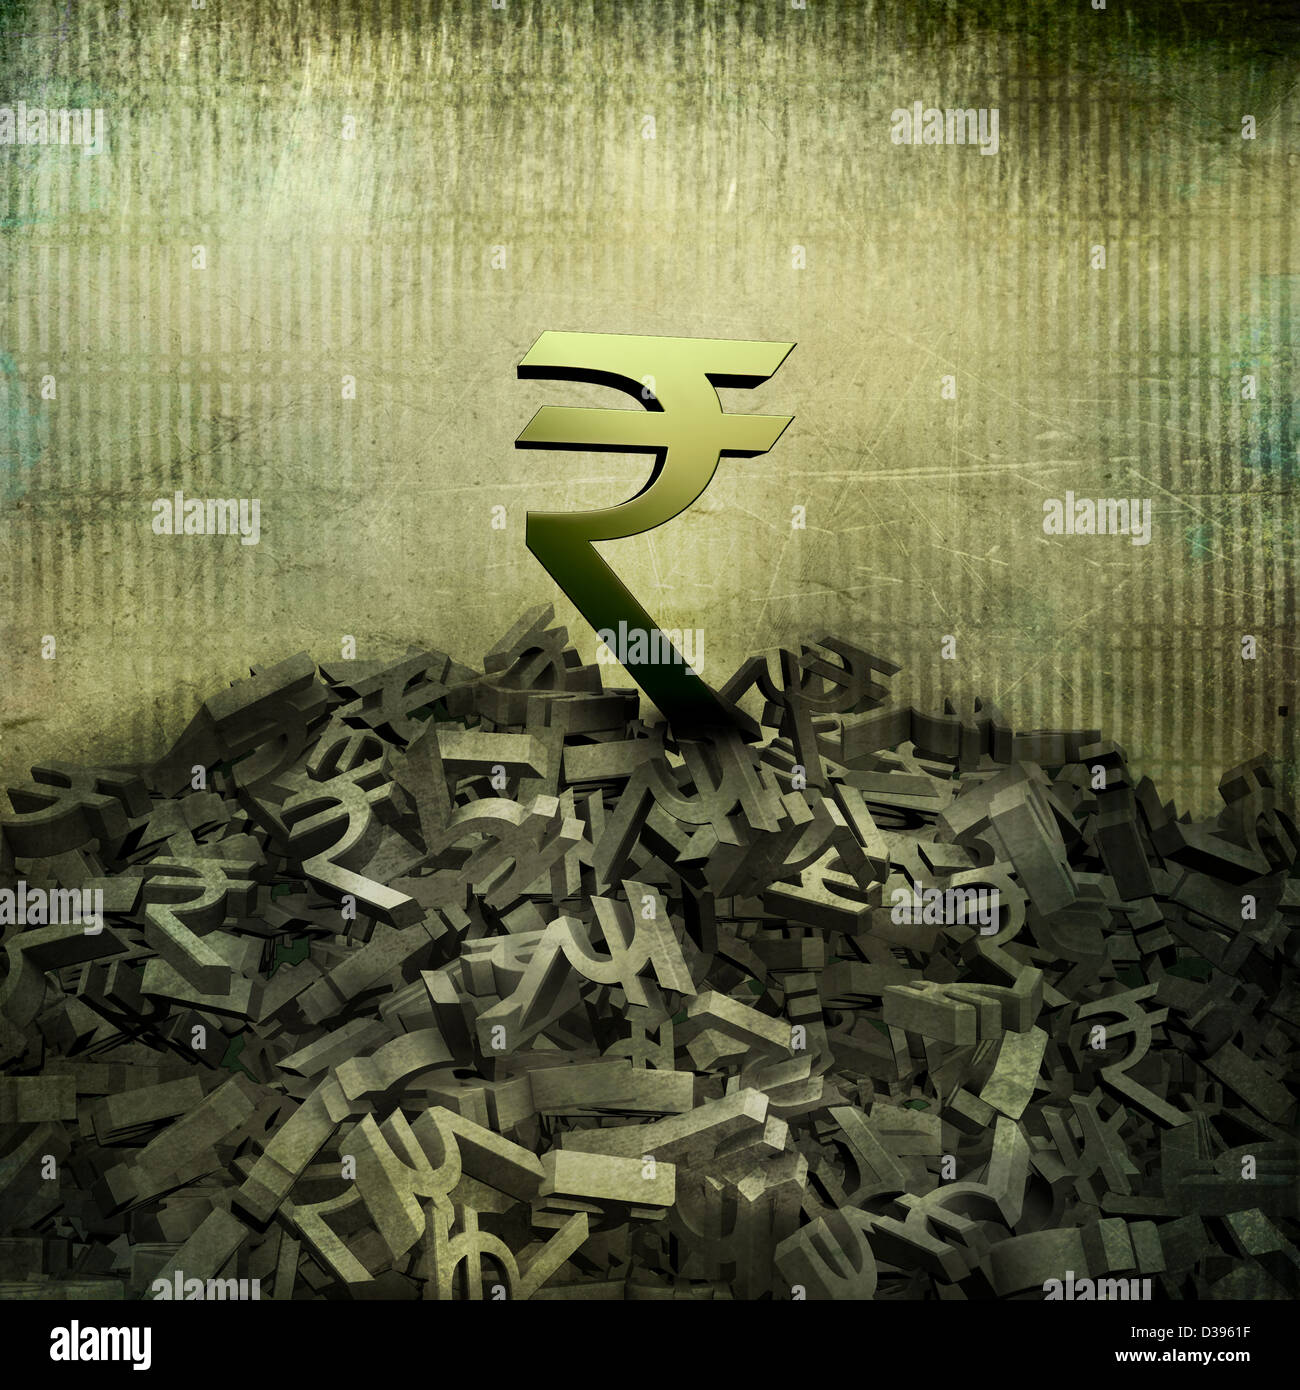 Big Rupee sign on top of small currency symbols - Stock Image